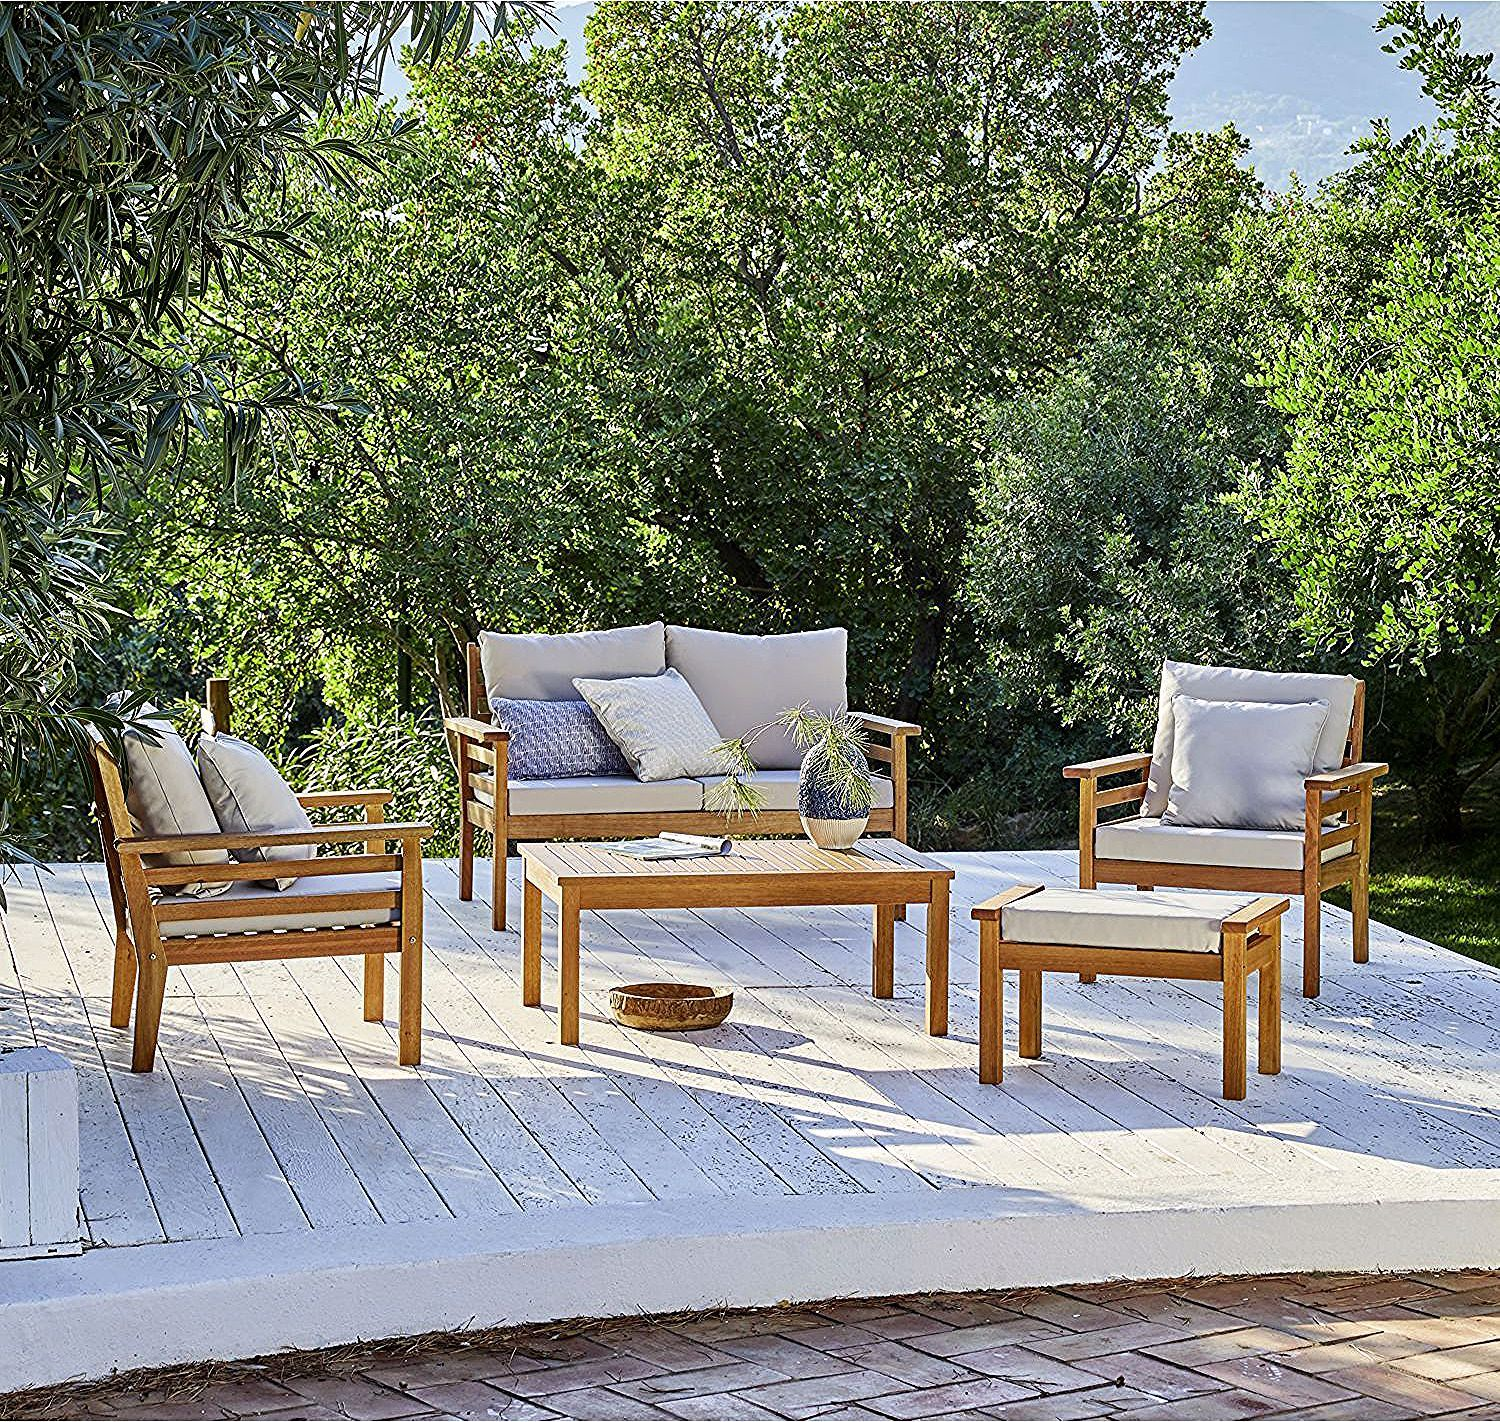 Canapes Et Fauteuils In 2020 Outdoor Decor Outdoor Furniture Sets Outdoor Furniture